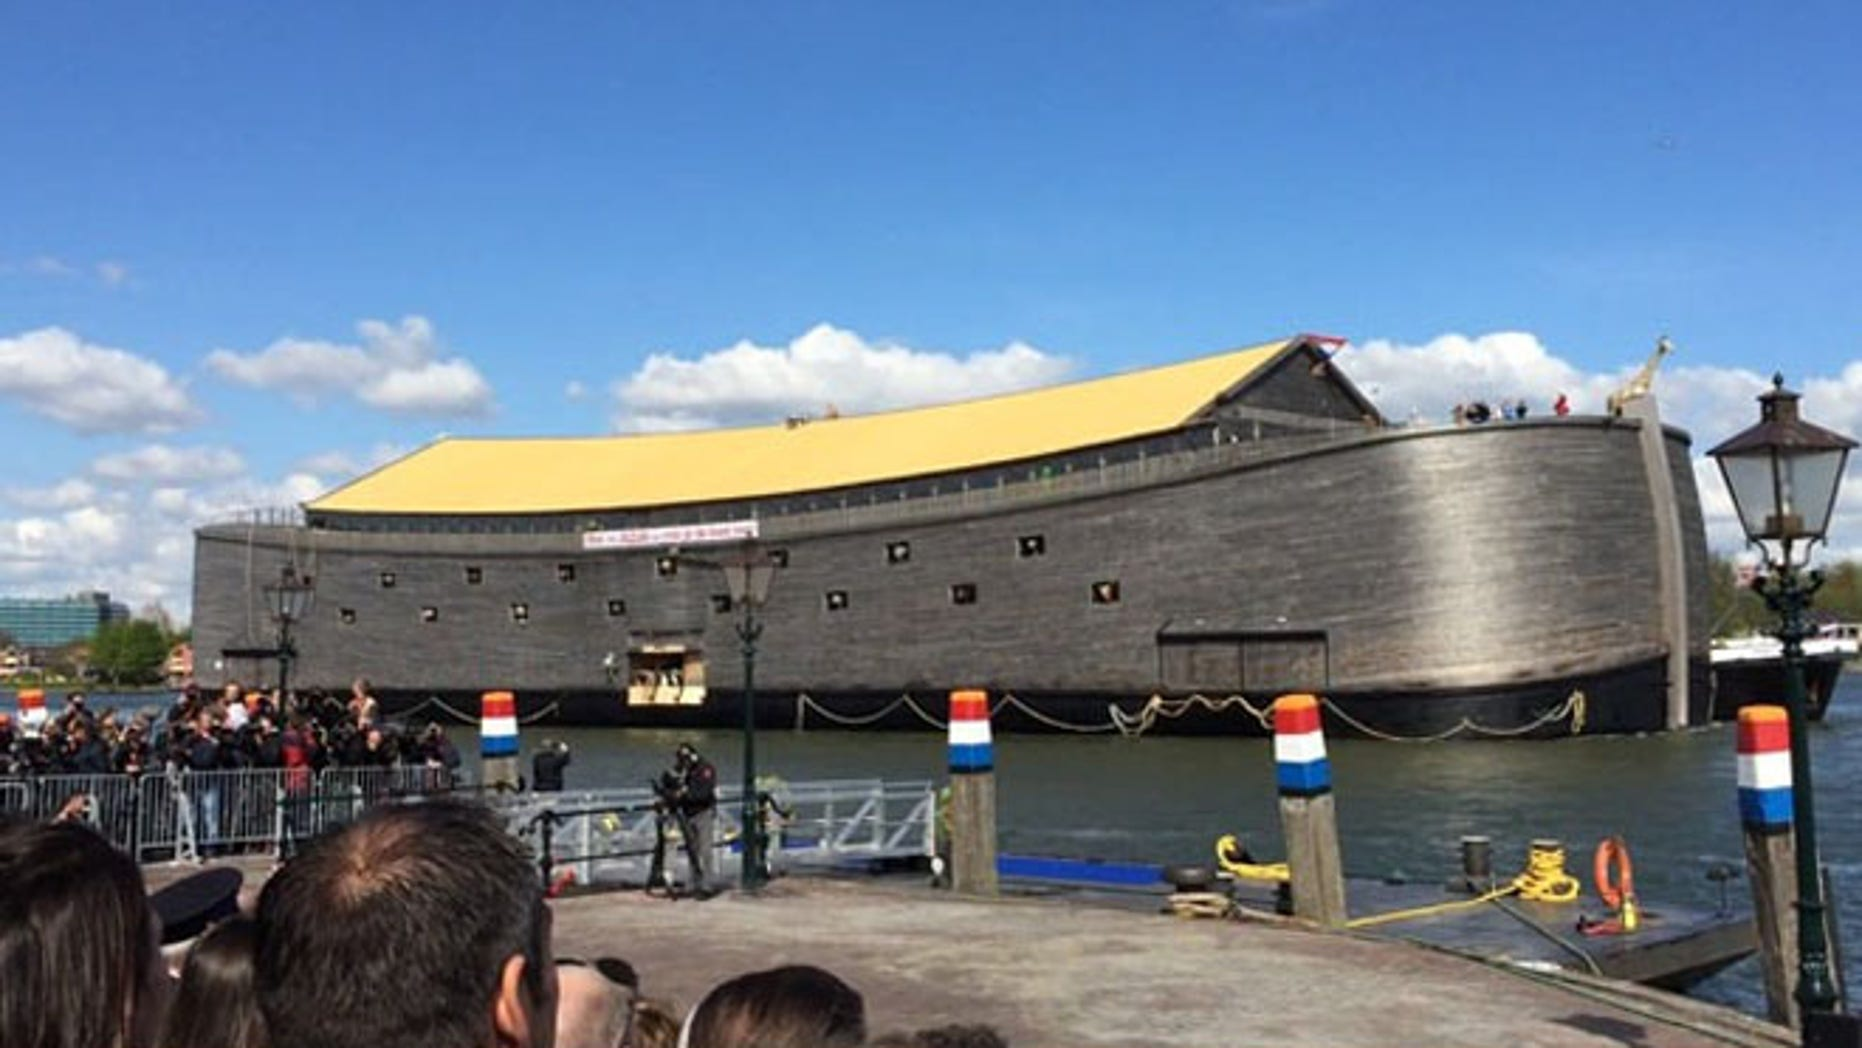 The ark is a major tourist attraction in Holland, but could be bound for the Americas. (Ark of Noah Foundation)